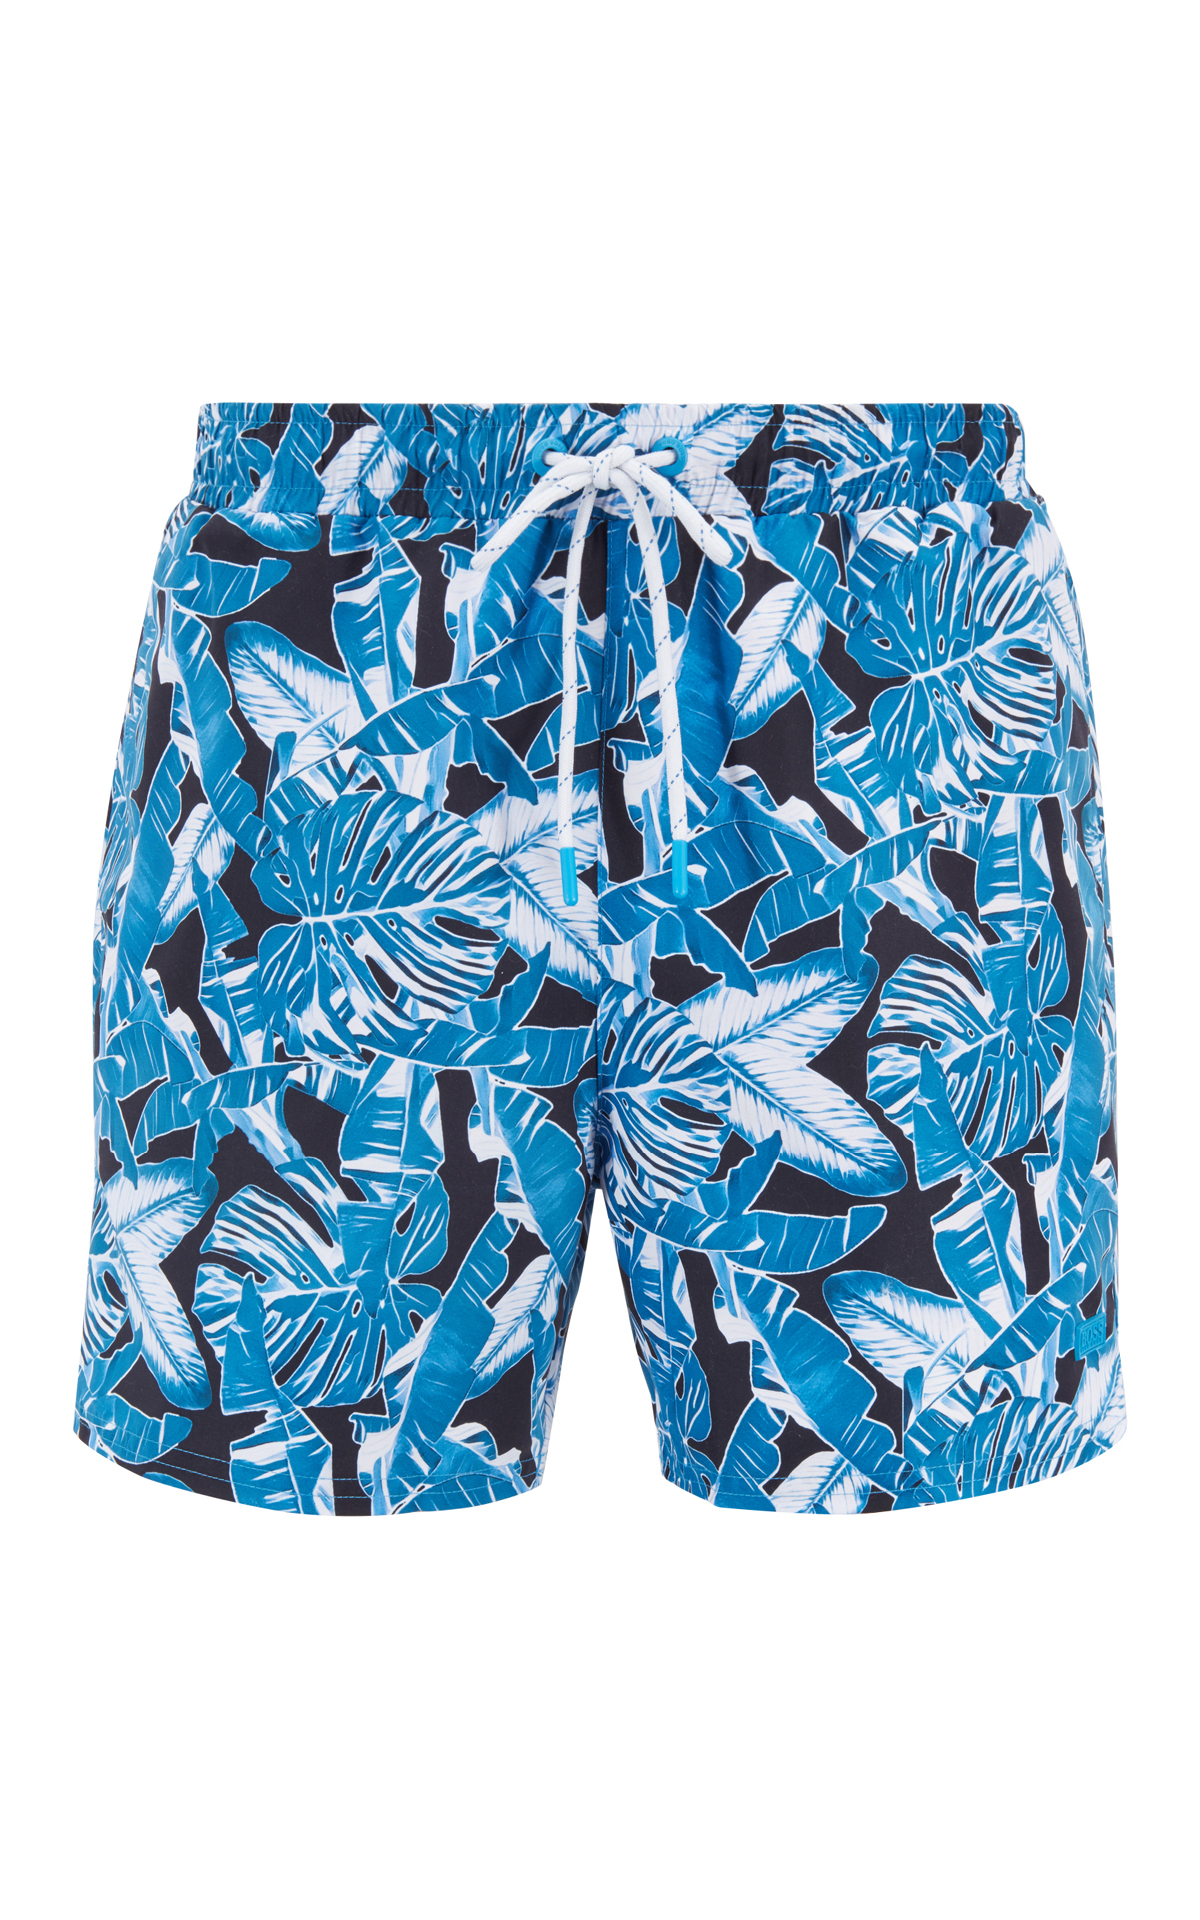 BOSS swim shorts at The Bicester Village Shopping Collection